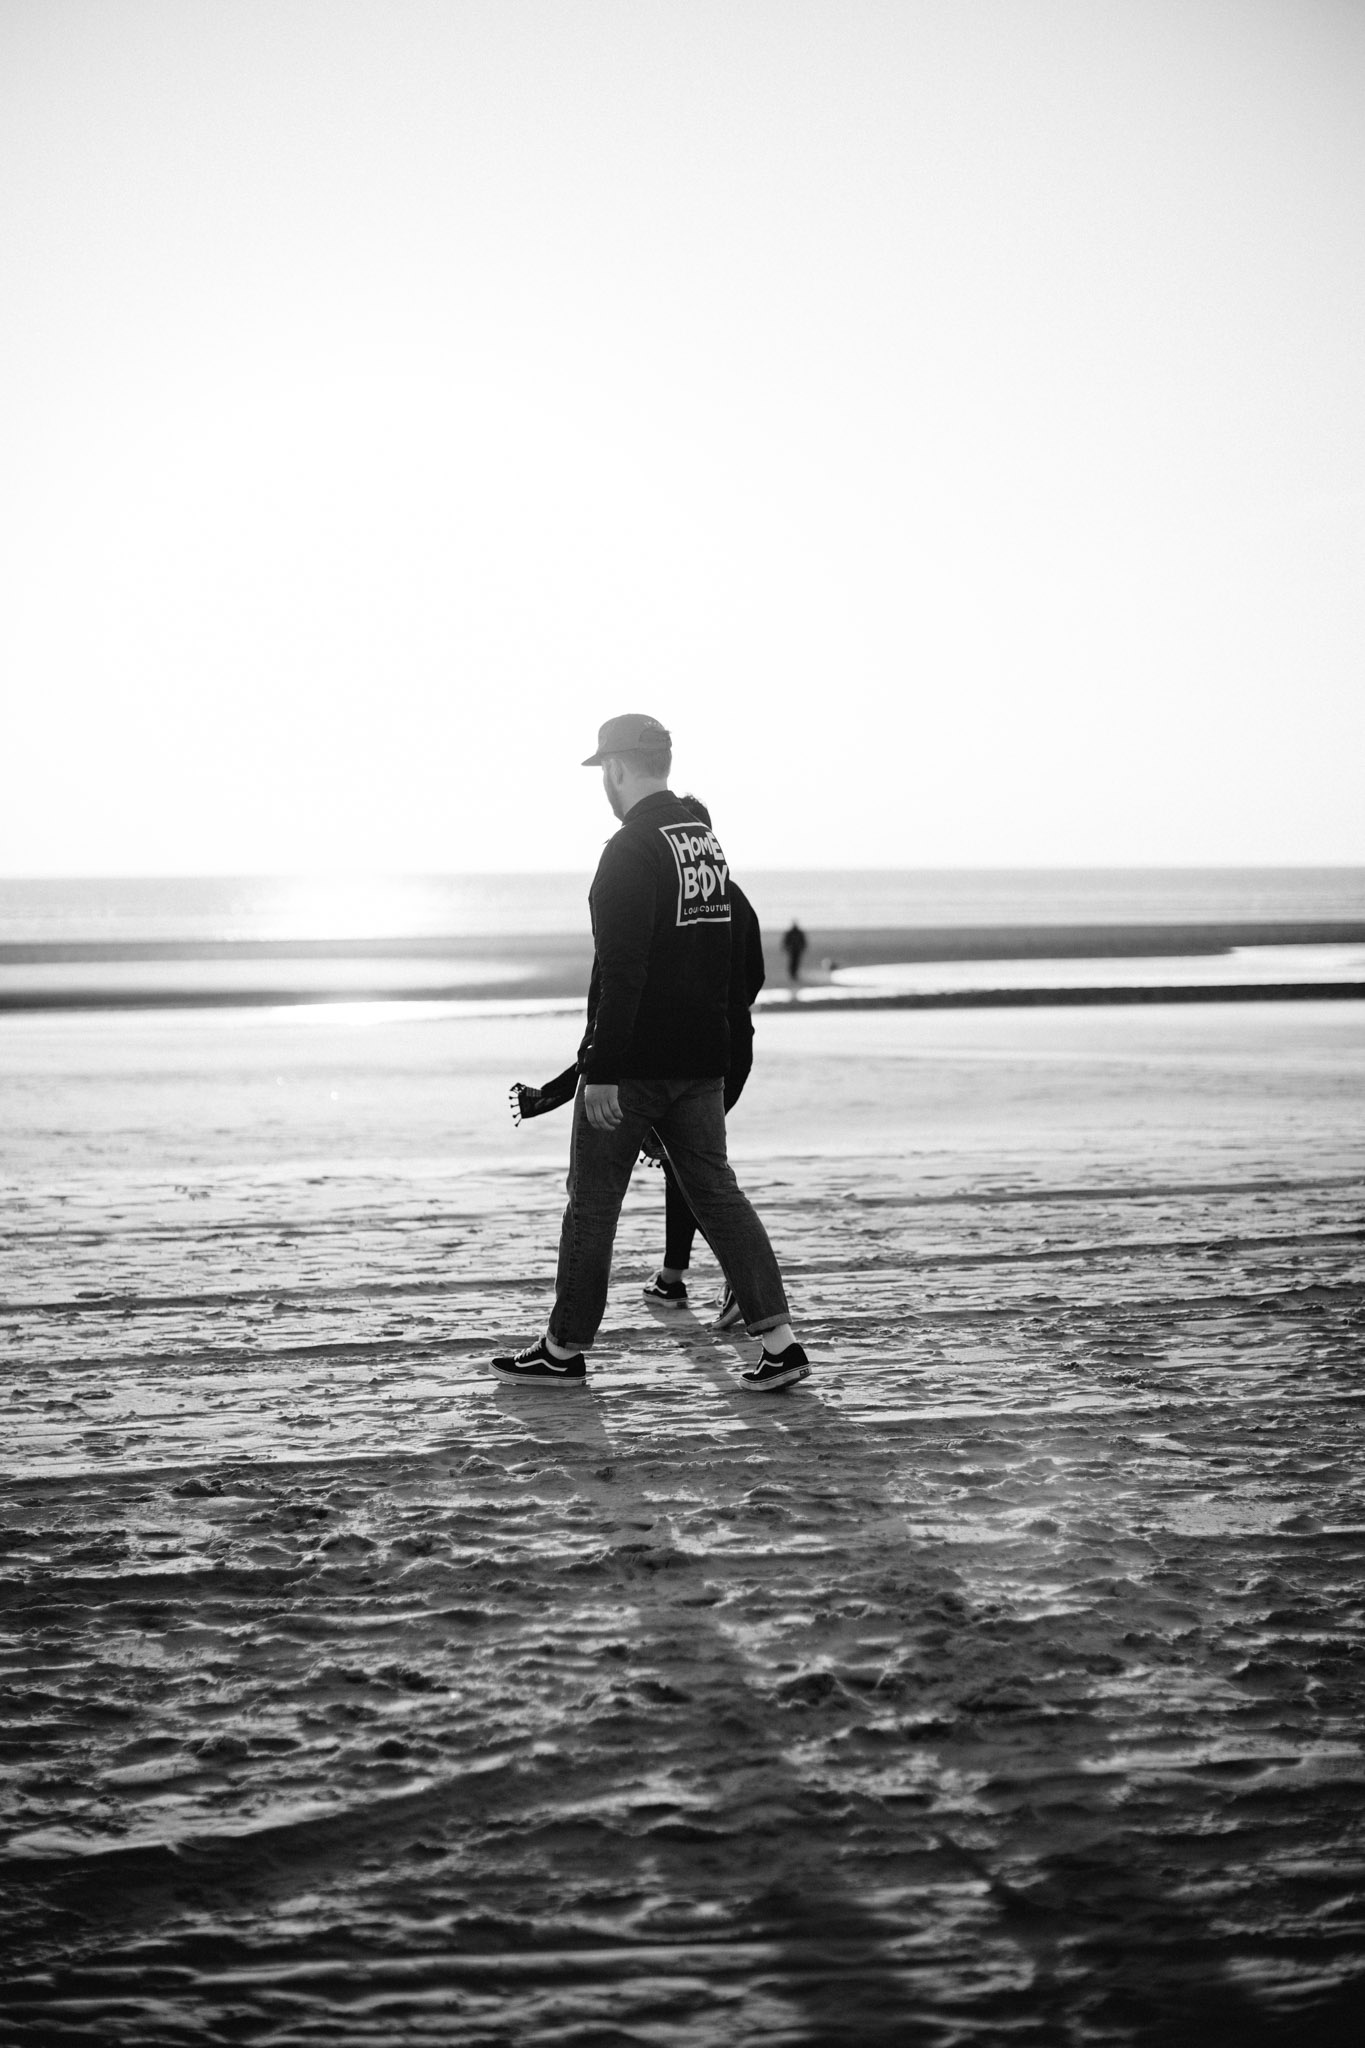 Sankt-Peter-Ording-Engagement-Pia-Anna-Christian-Wedding-Photography-KT-43.jpg